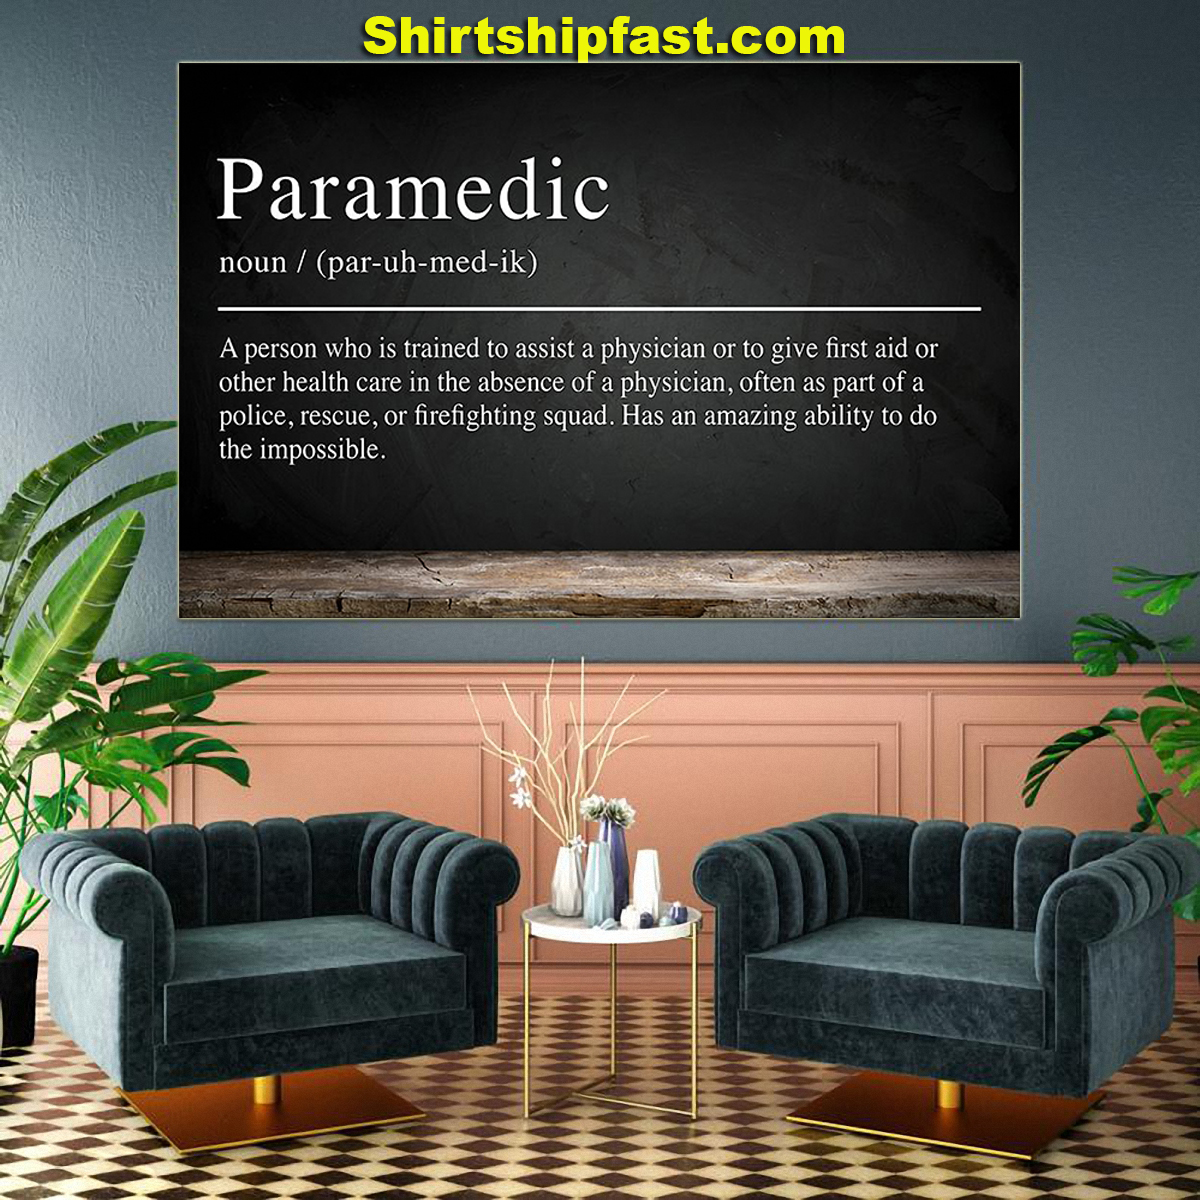 Paramedic definition poster - Picture 1